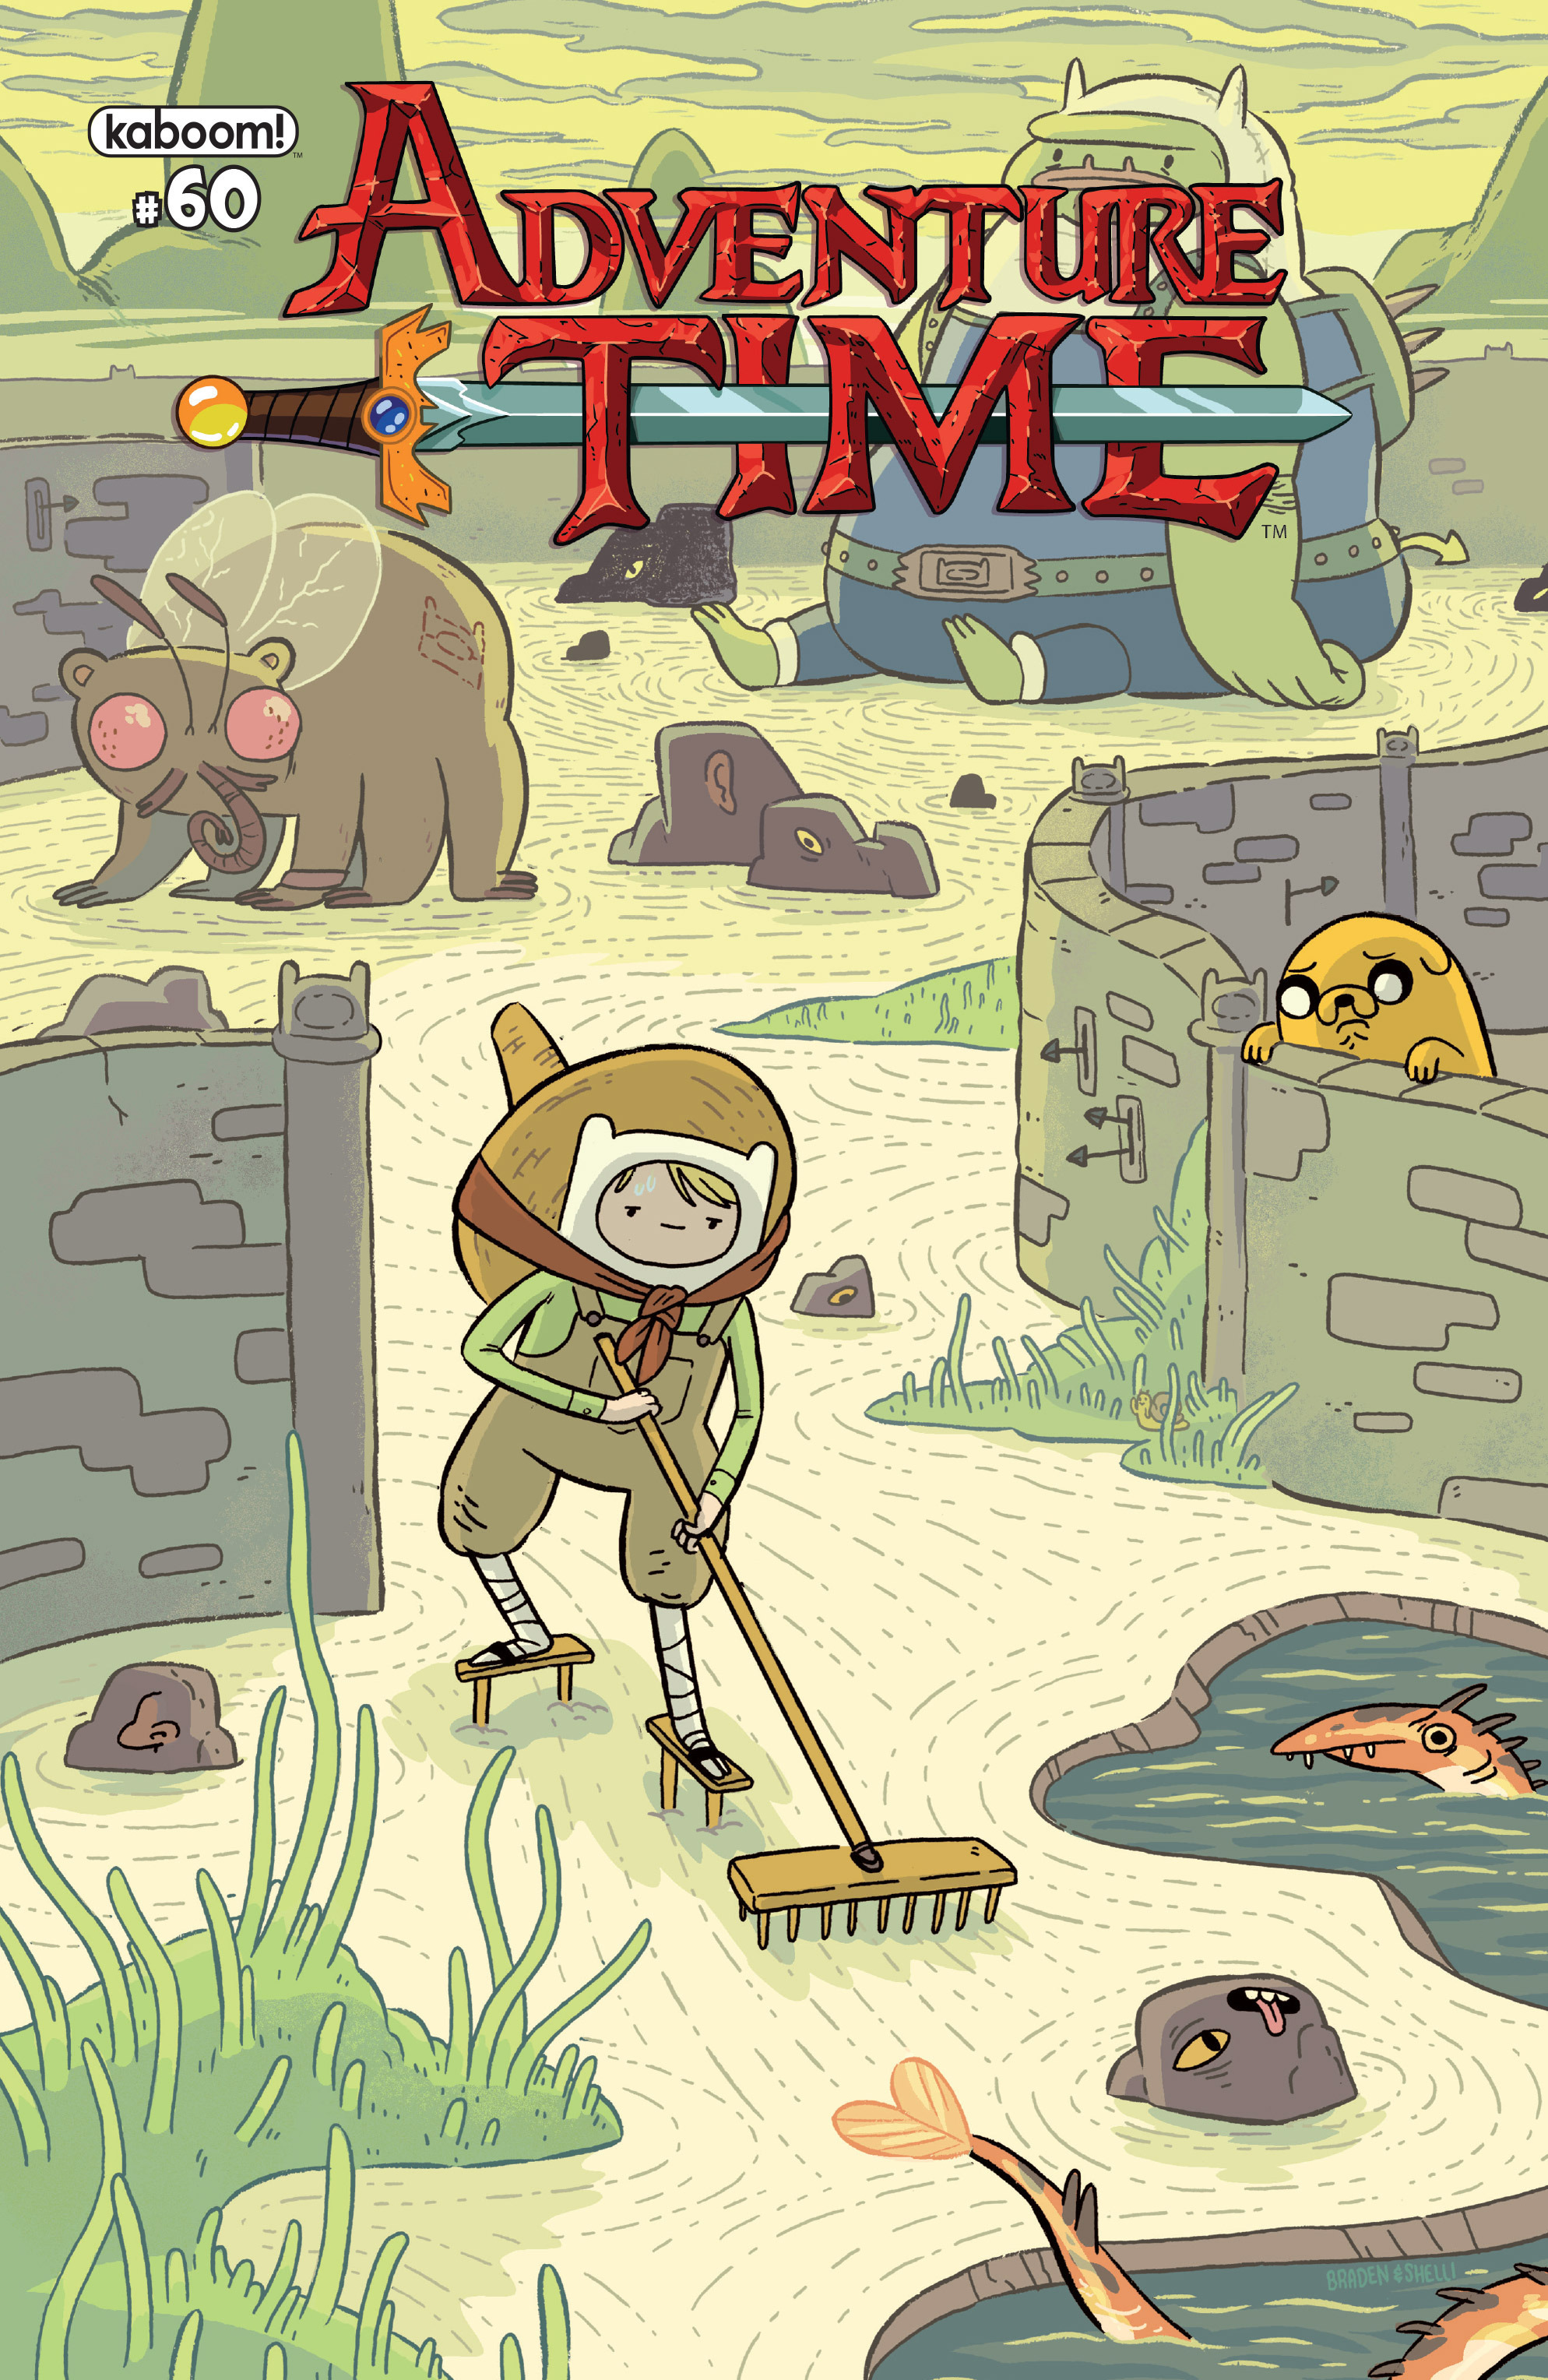 Adventure Time 60 Page 1